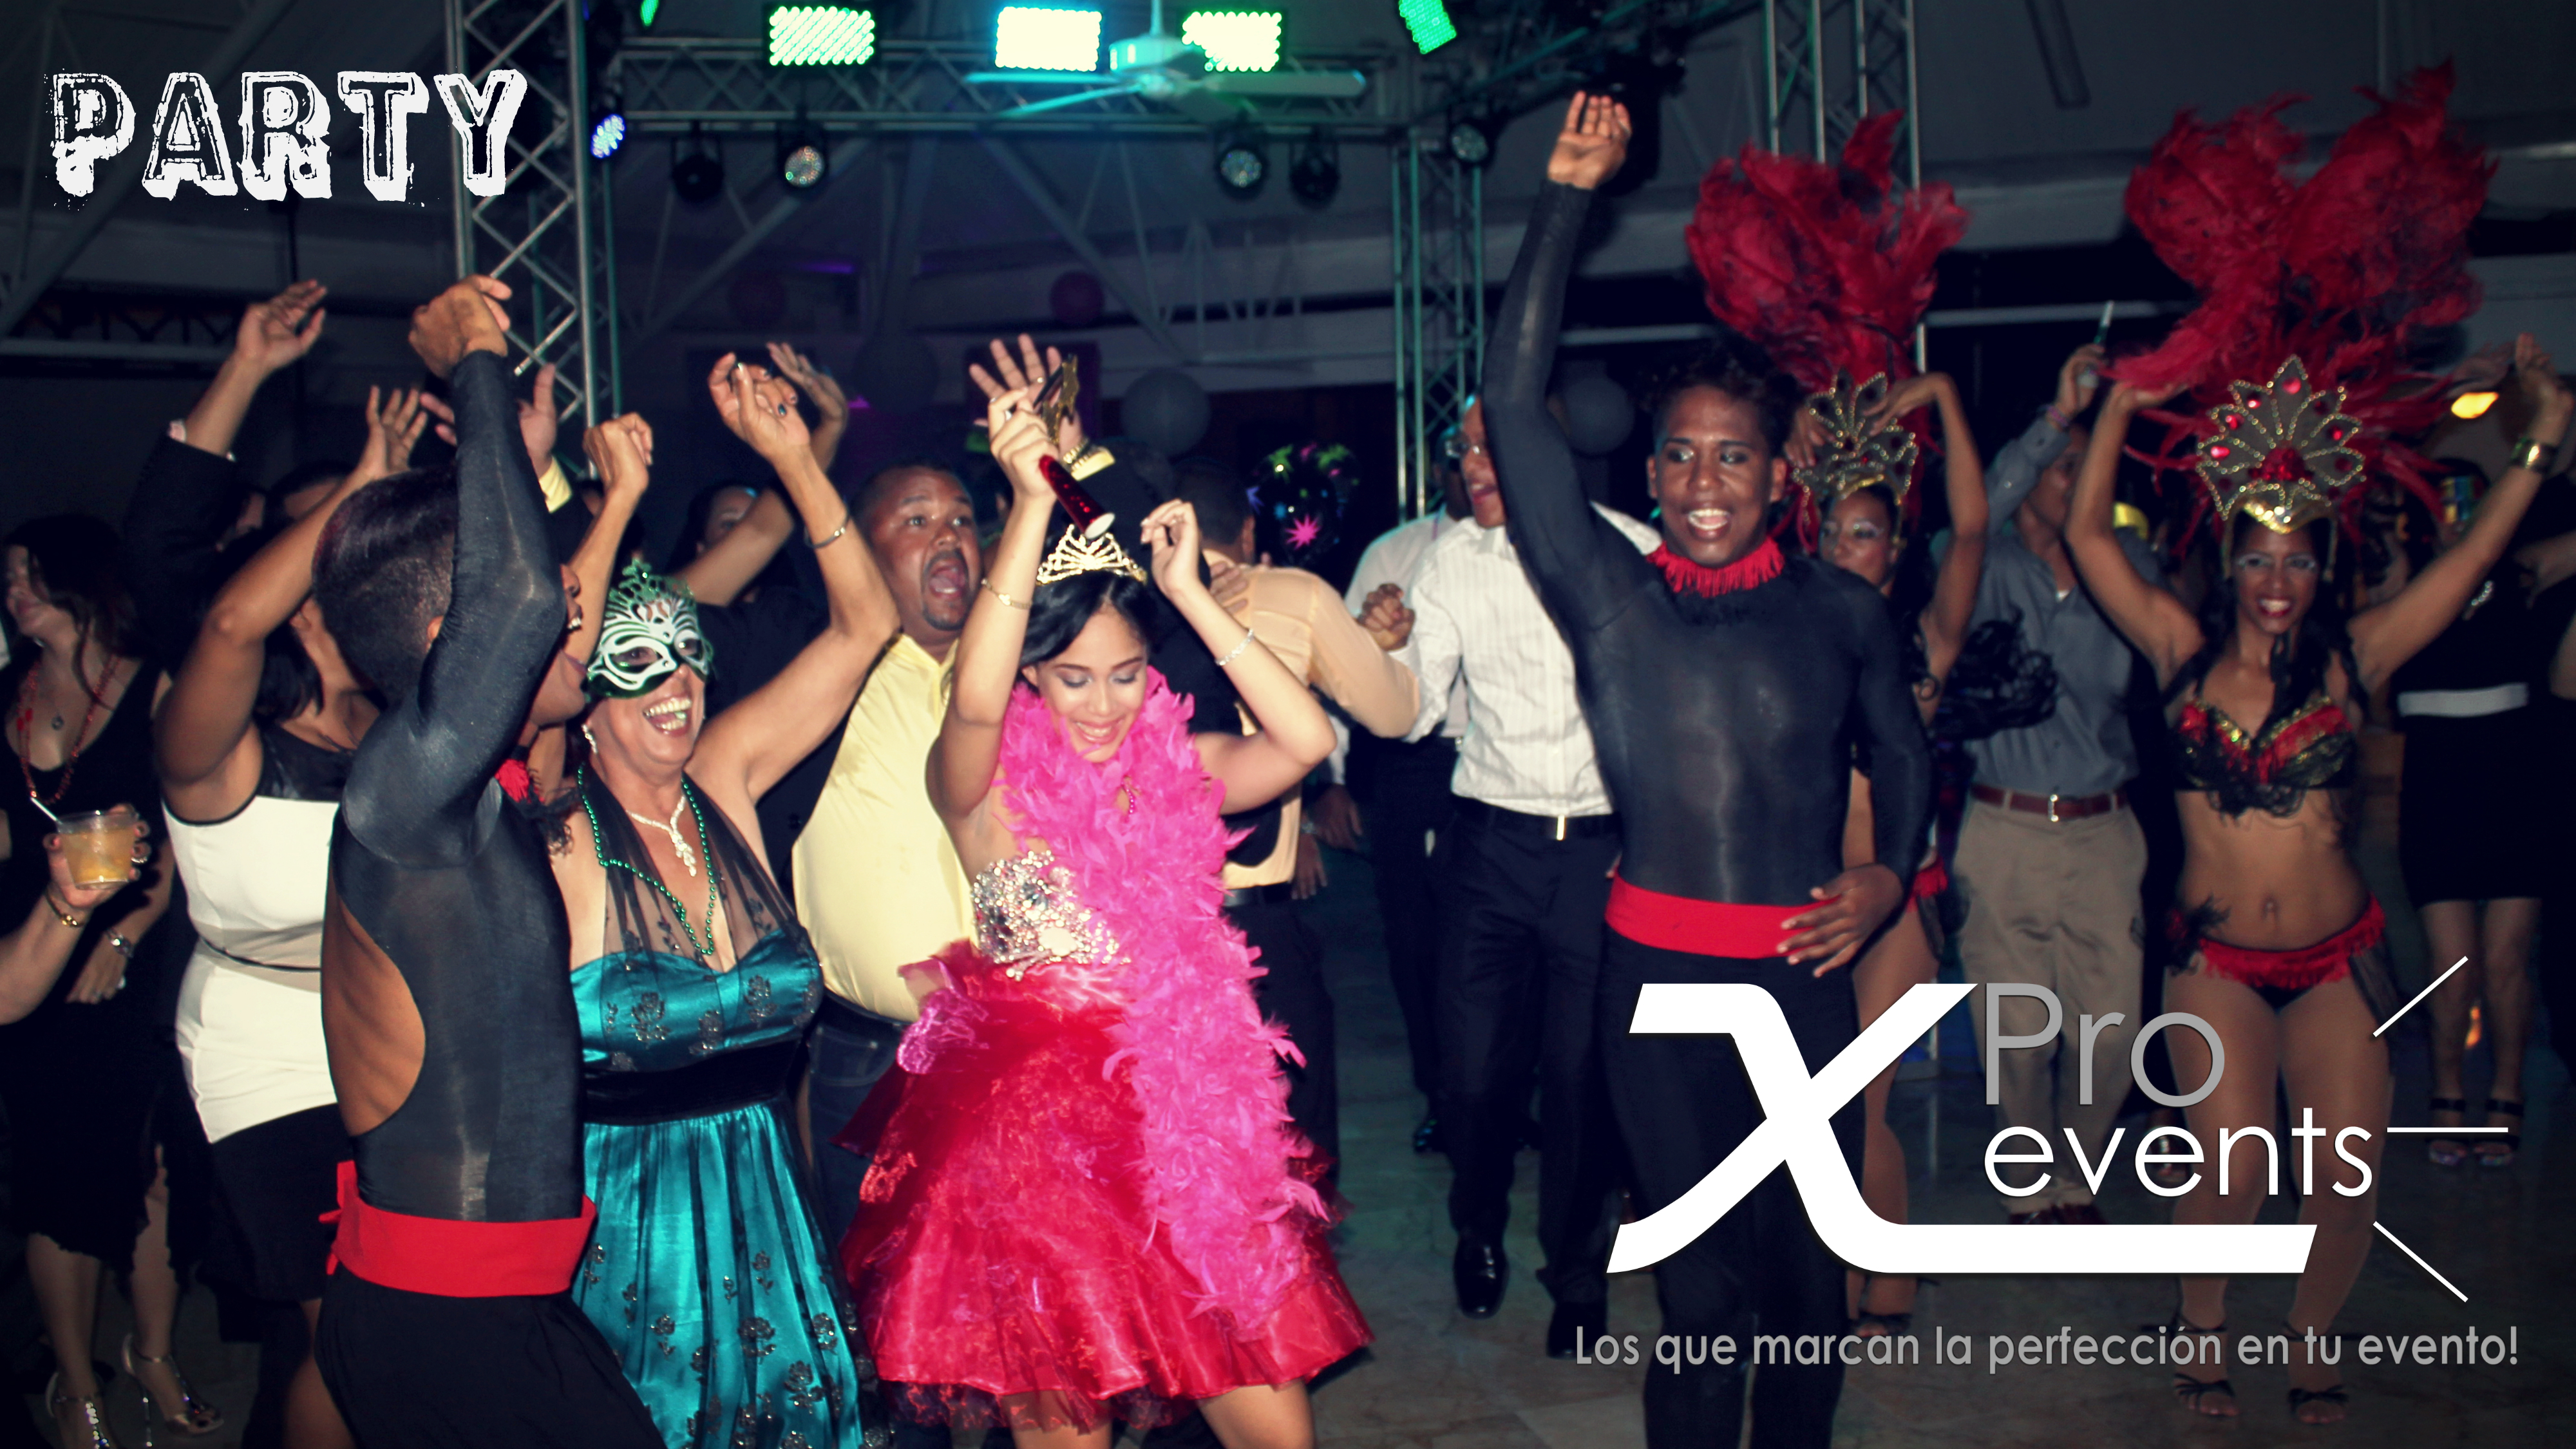 www.Xproevents.com - Party People.jpg